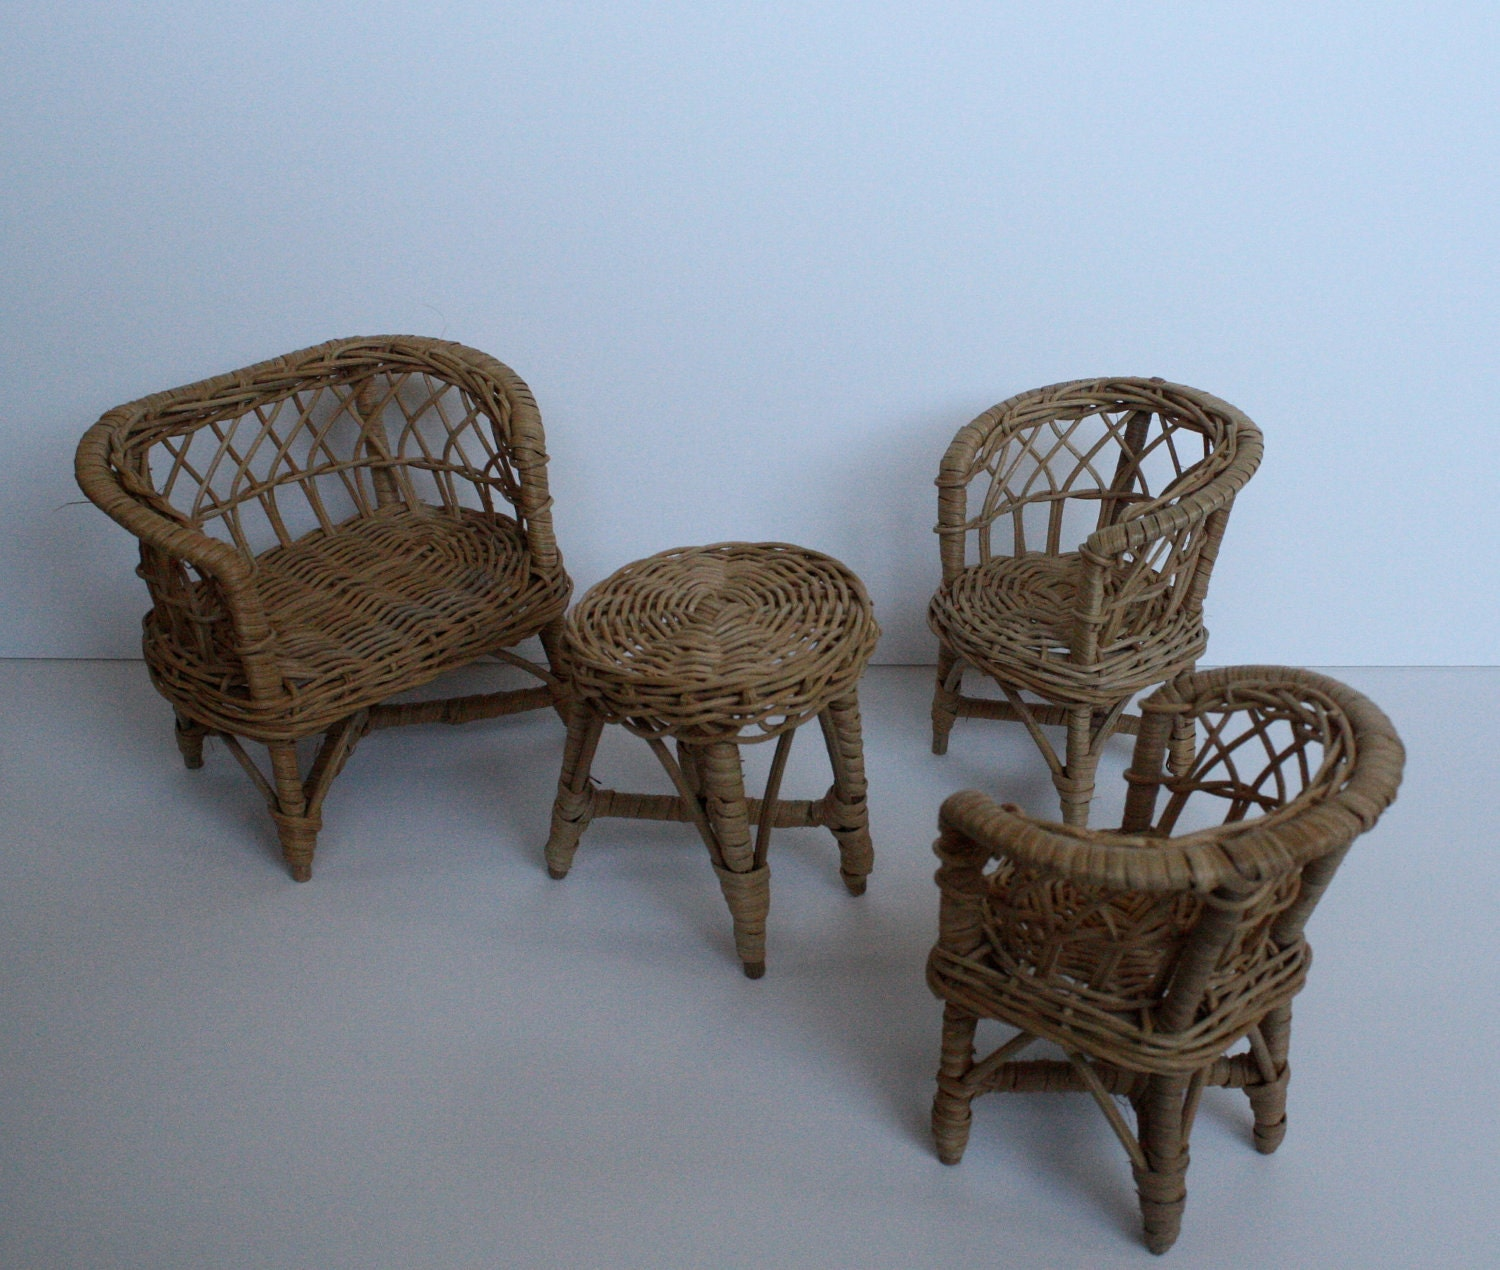 Etsy Vintage Bamboo Furniture: Vintage Barbie Wicker Furniture Set By Grandmaschildhood